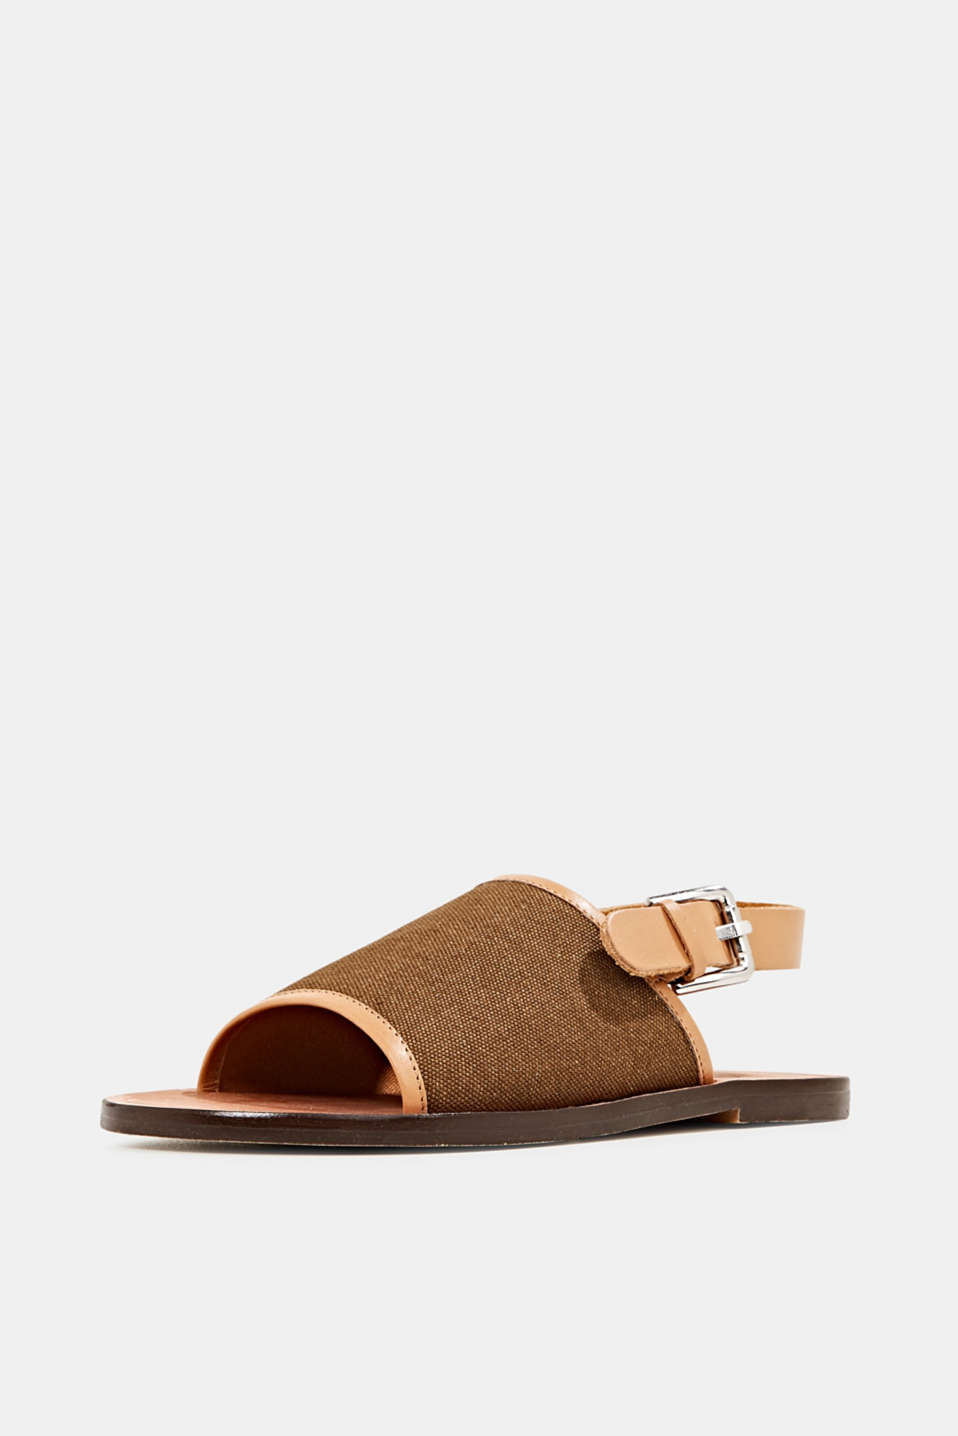 EarthColors® canvas sandals, SKIN BEIGE, detail image number 2